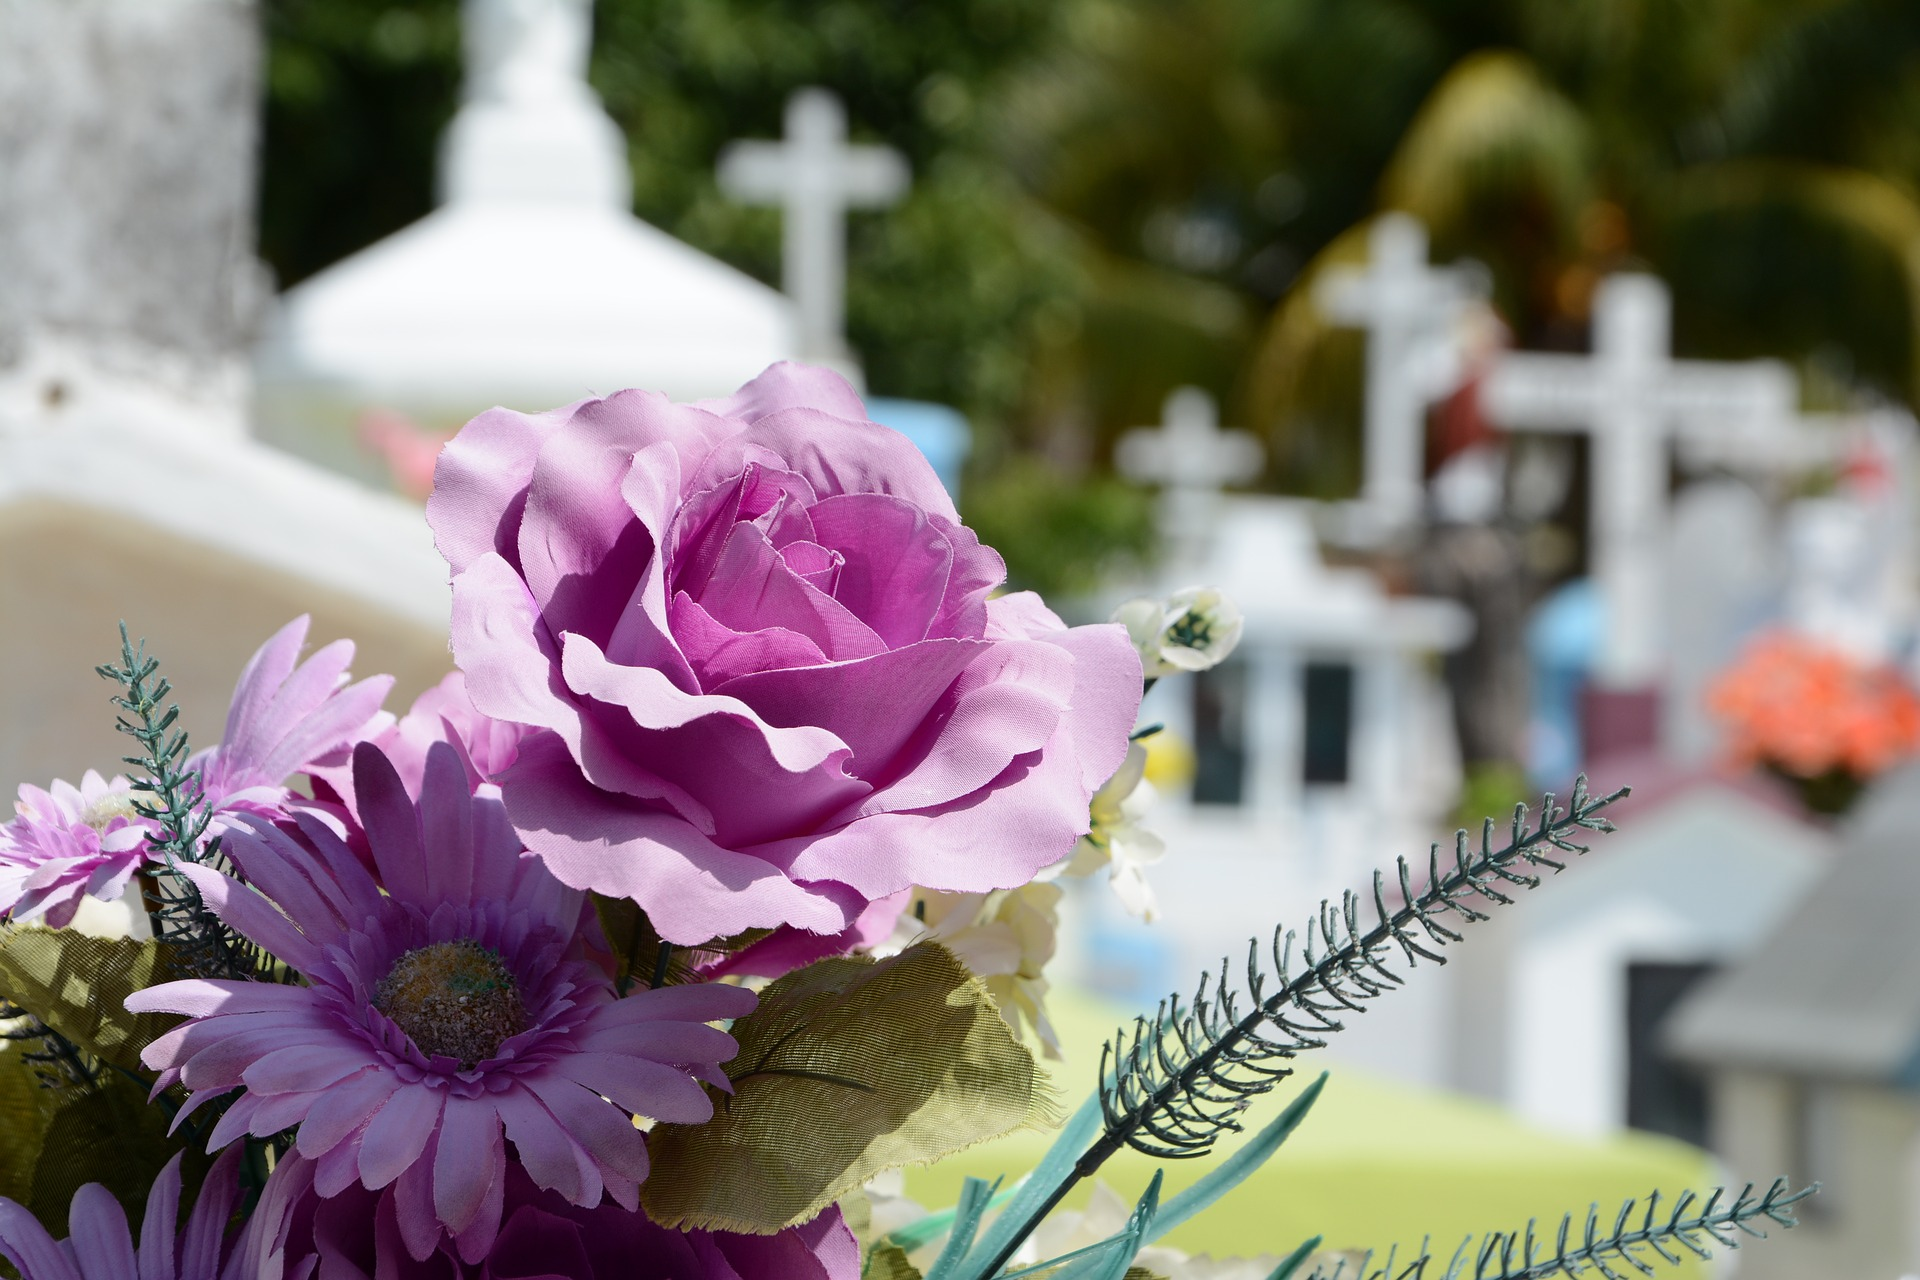 Create a great funeral day - October 30th